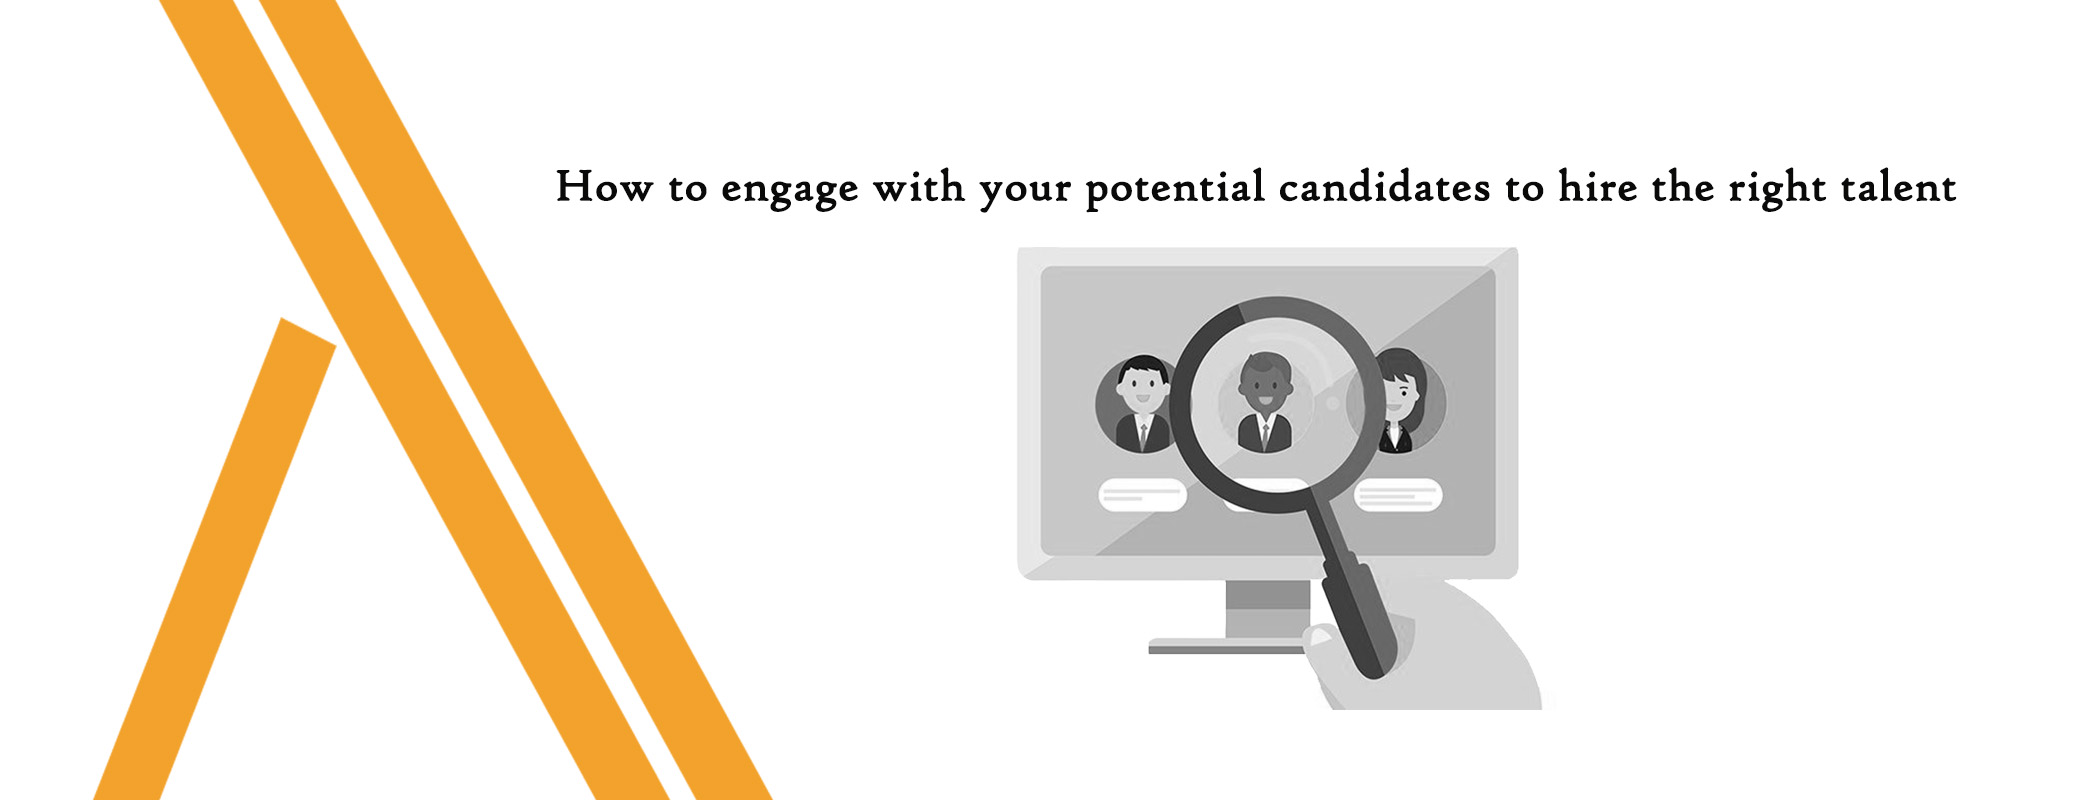 How to engage with your potential candidates to hire the right talent.